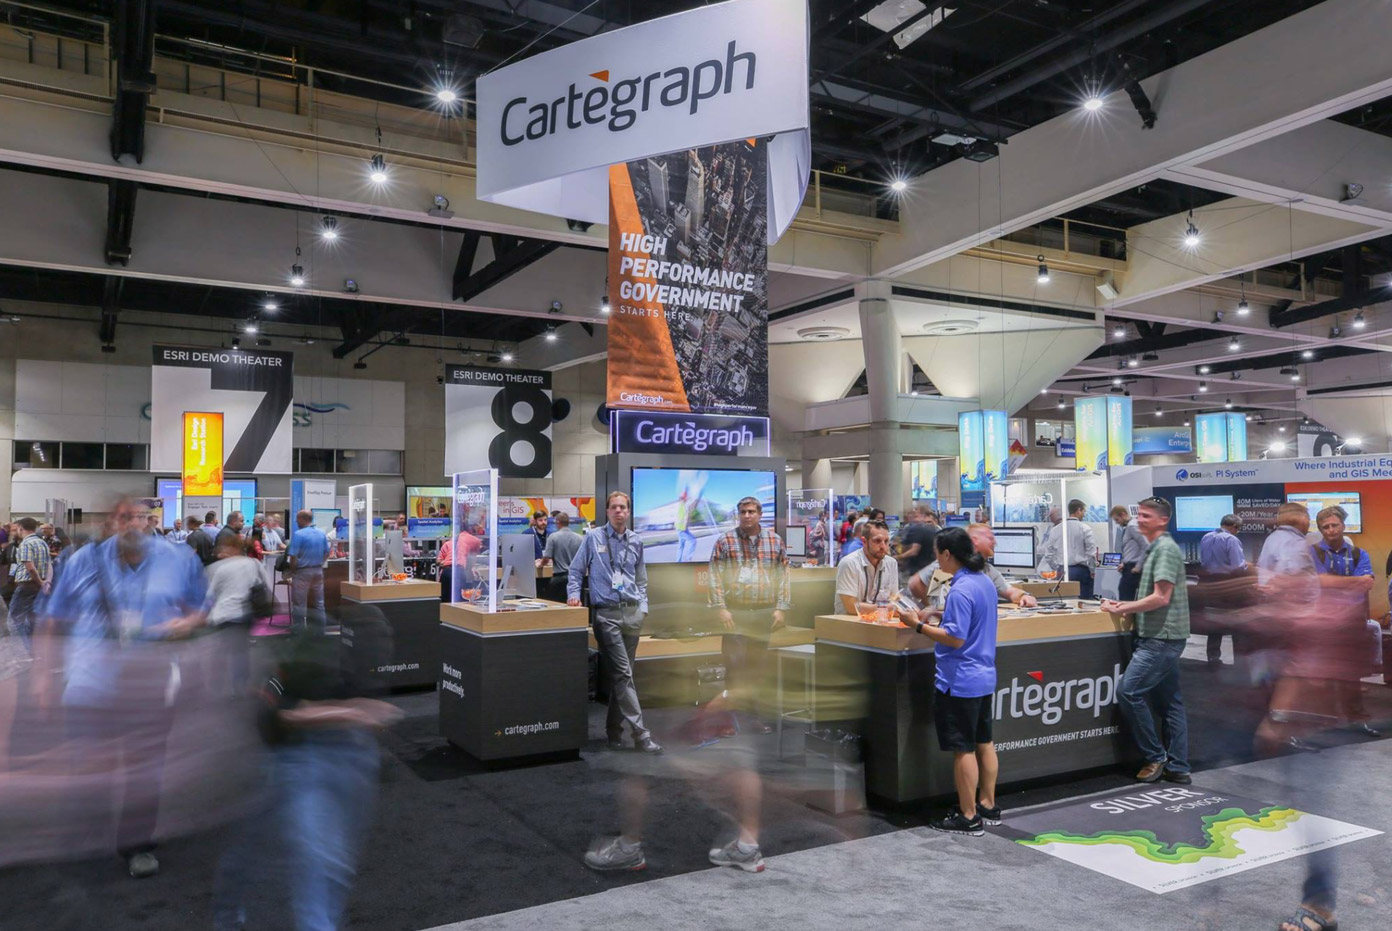 People at the Cartegraph Tradeshow Booth